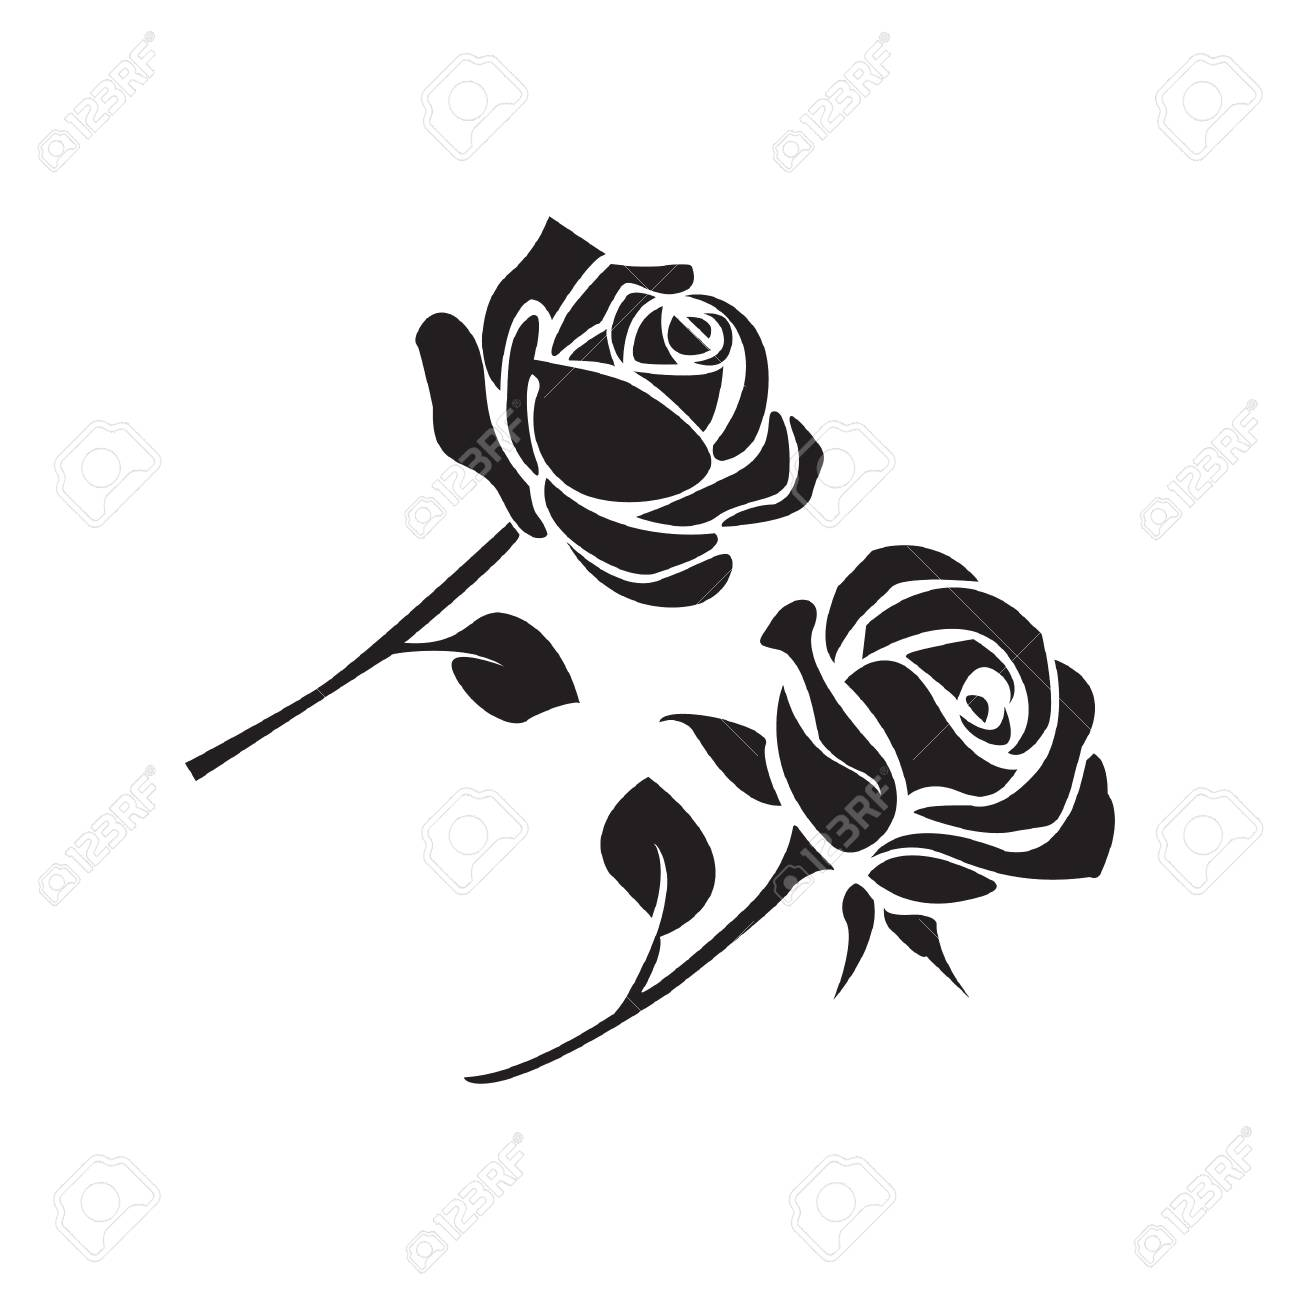 62430780d Simple Flat Black Rose Icon Vector Royalty Free Cliparts, Vectors ...